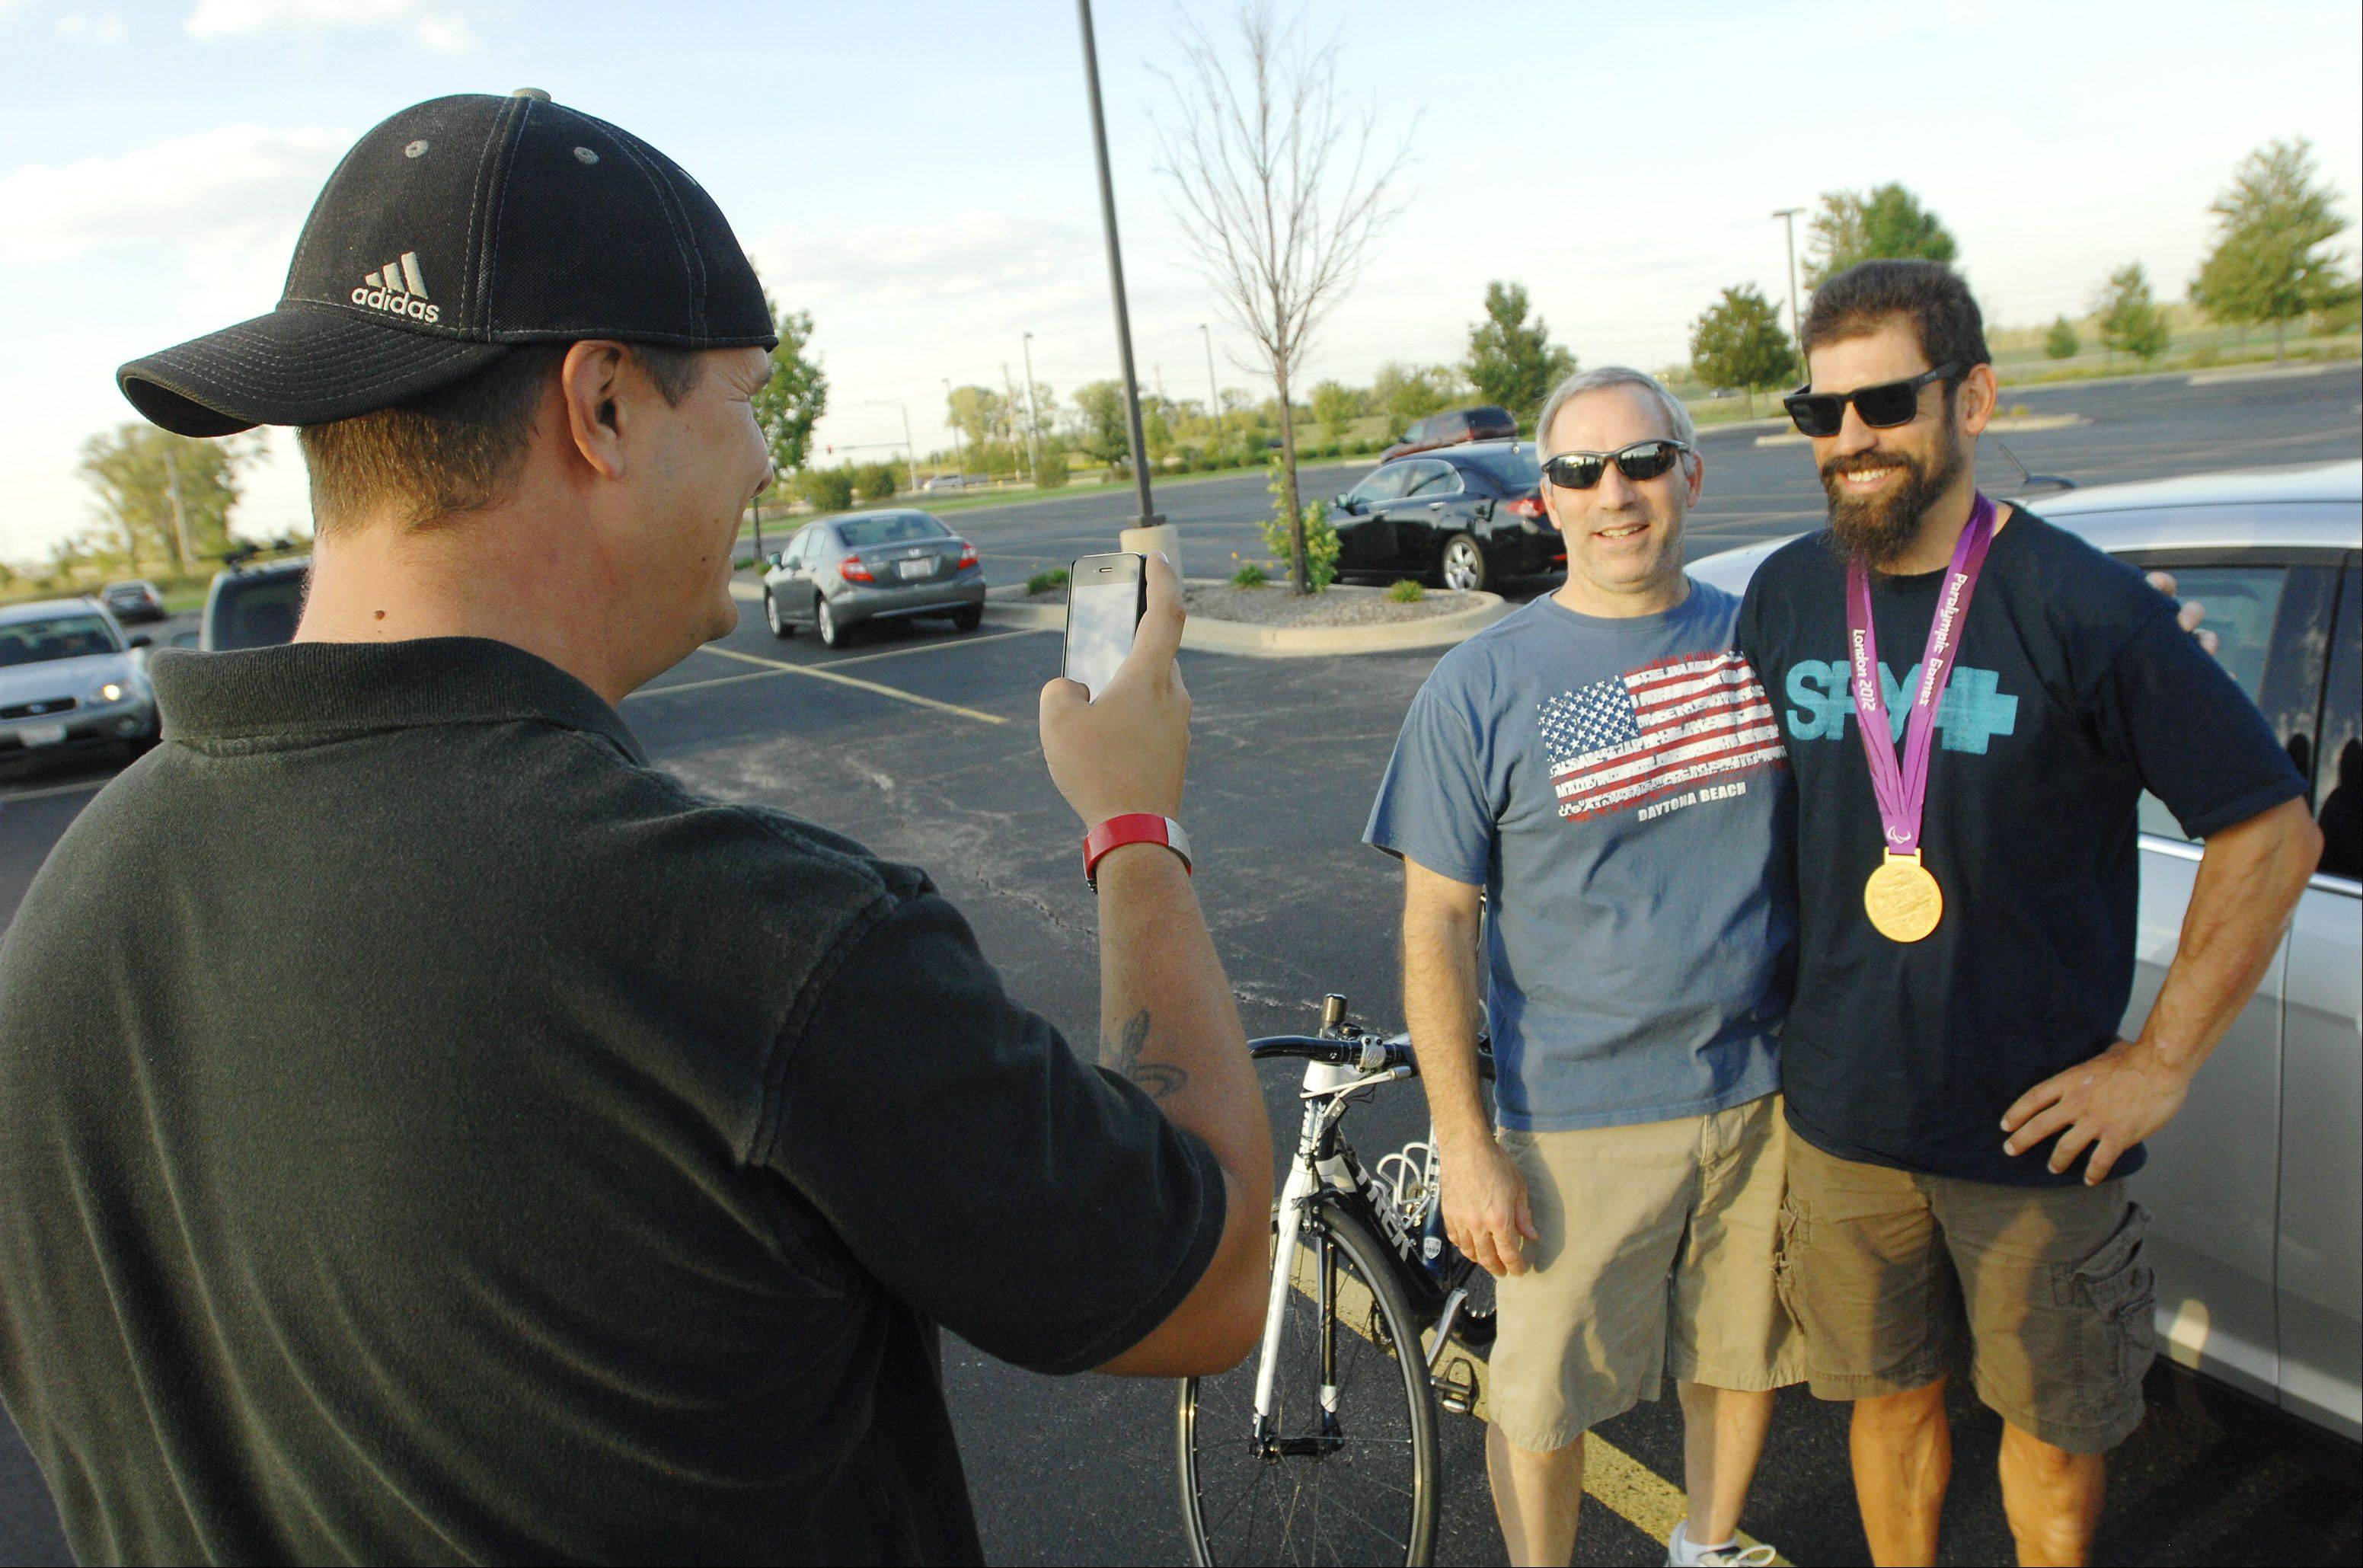 Aurora native and Paralympic gold, silver, and bronze medalist Joe Berenyi, right, poses for a photograph with Robert Riccio of North Aurora while hanging out on Wednesday night with other cyclists in West Chicago. Hanover Park resident Rich Johnson was taking the photo.